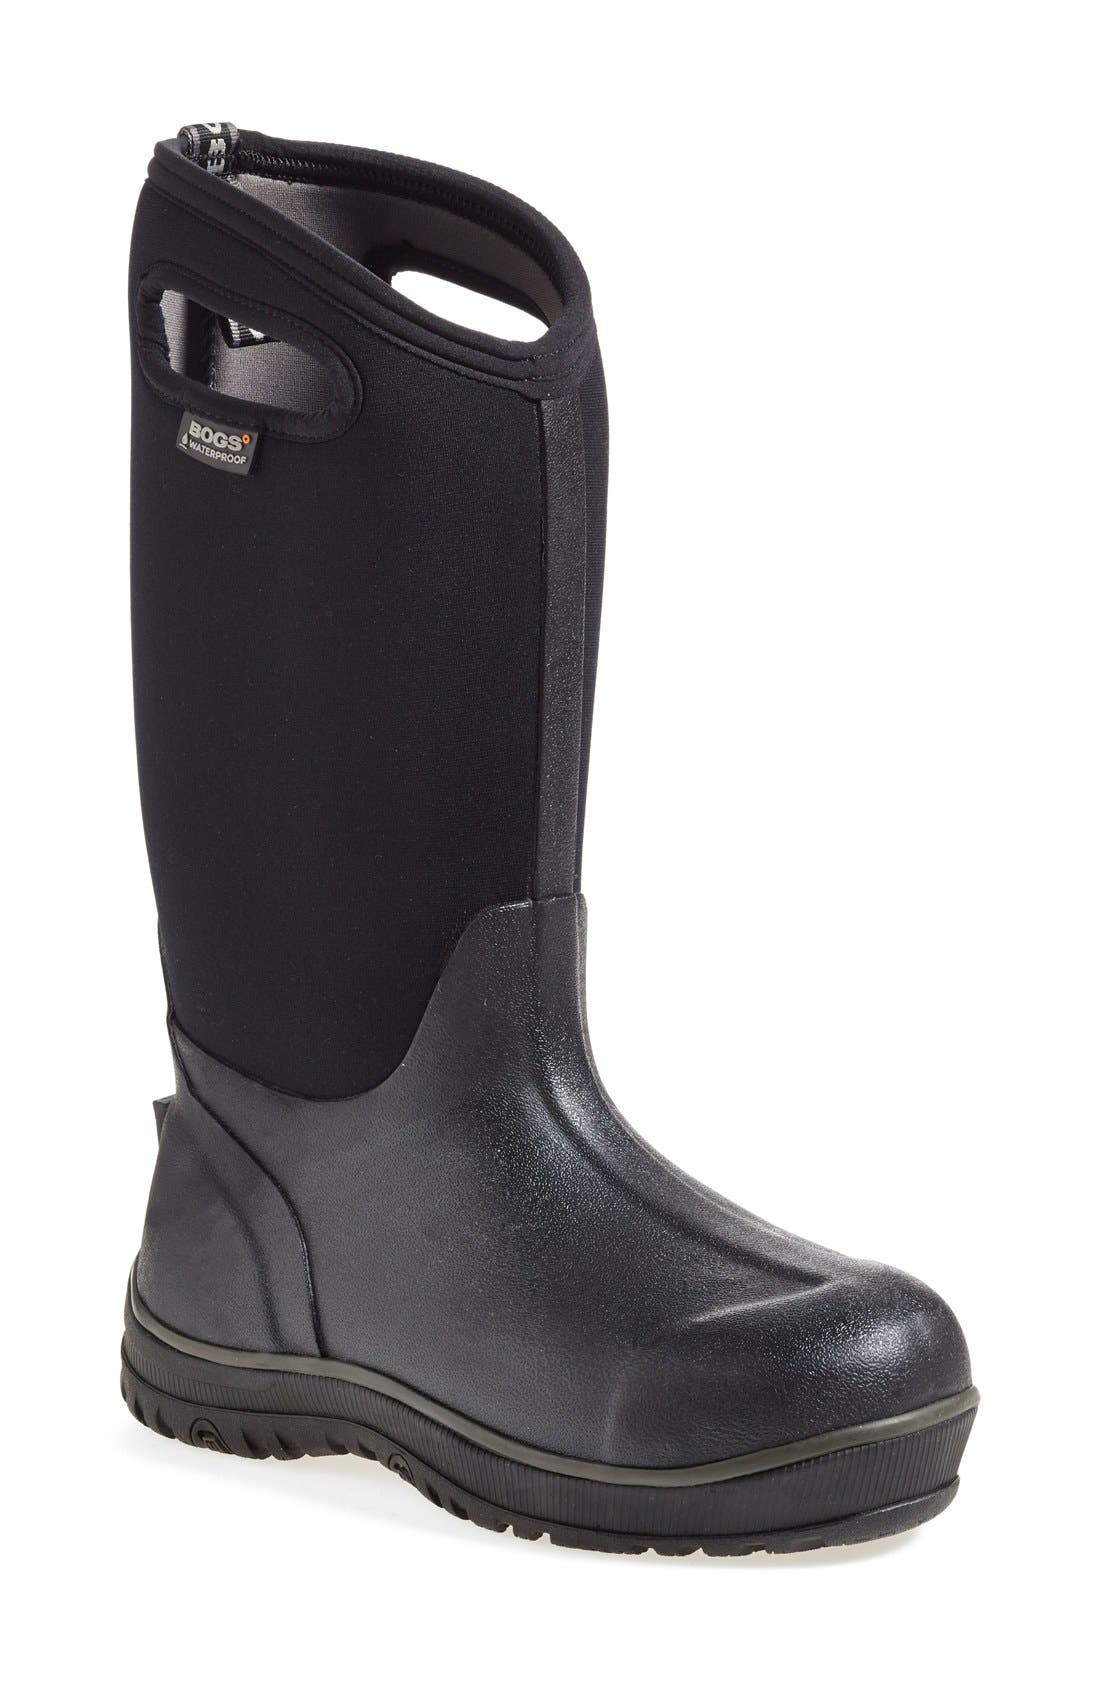 Bogs 'Classic' Ultra High Waterproof Snow Boot with Cutout Handles (Women)